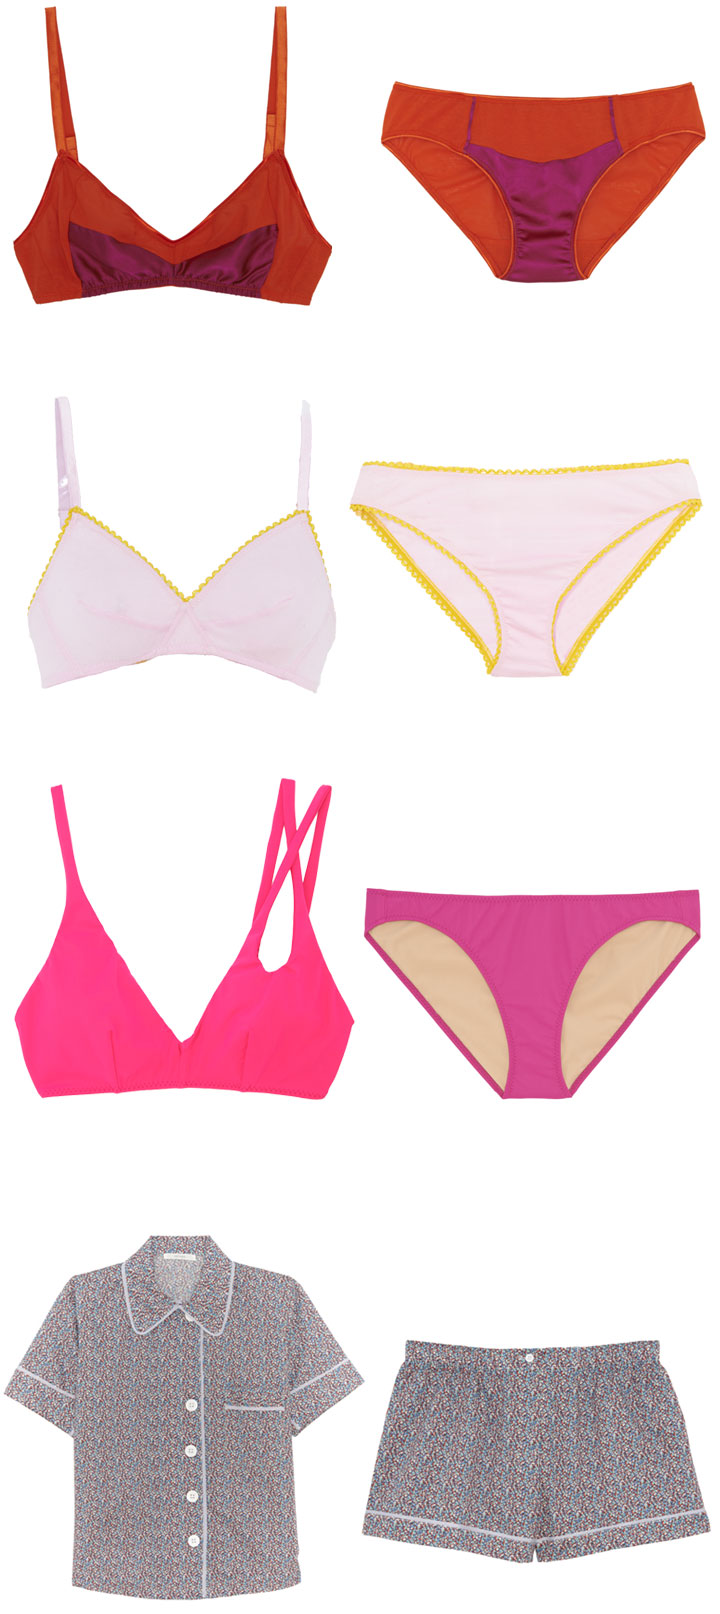 Araks Lingerie, Swim & RTW Sample Sale